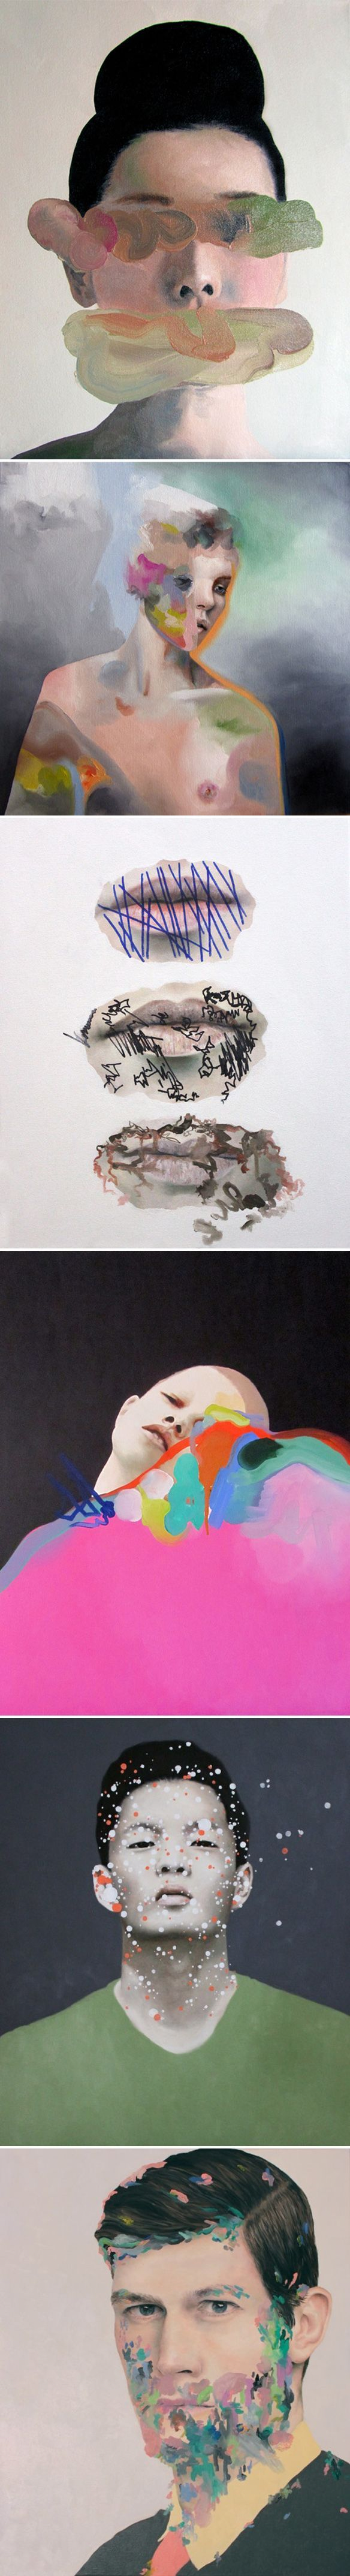 oil paintings by andrea castro